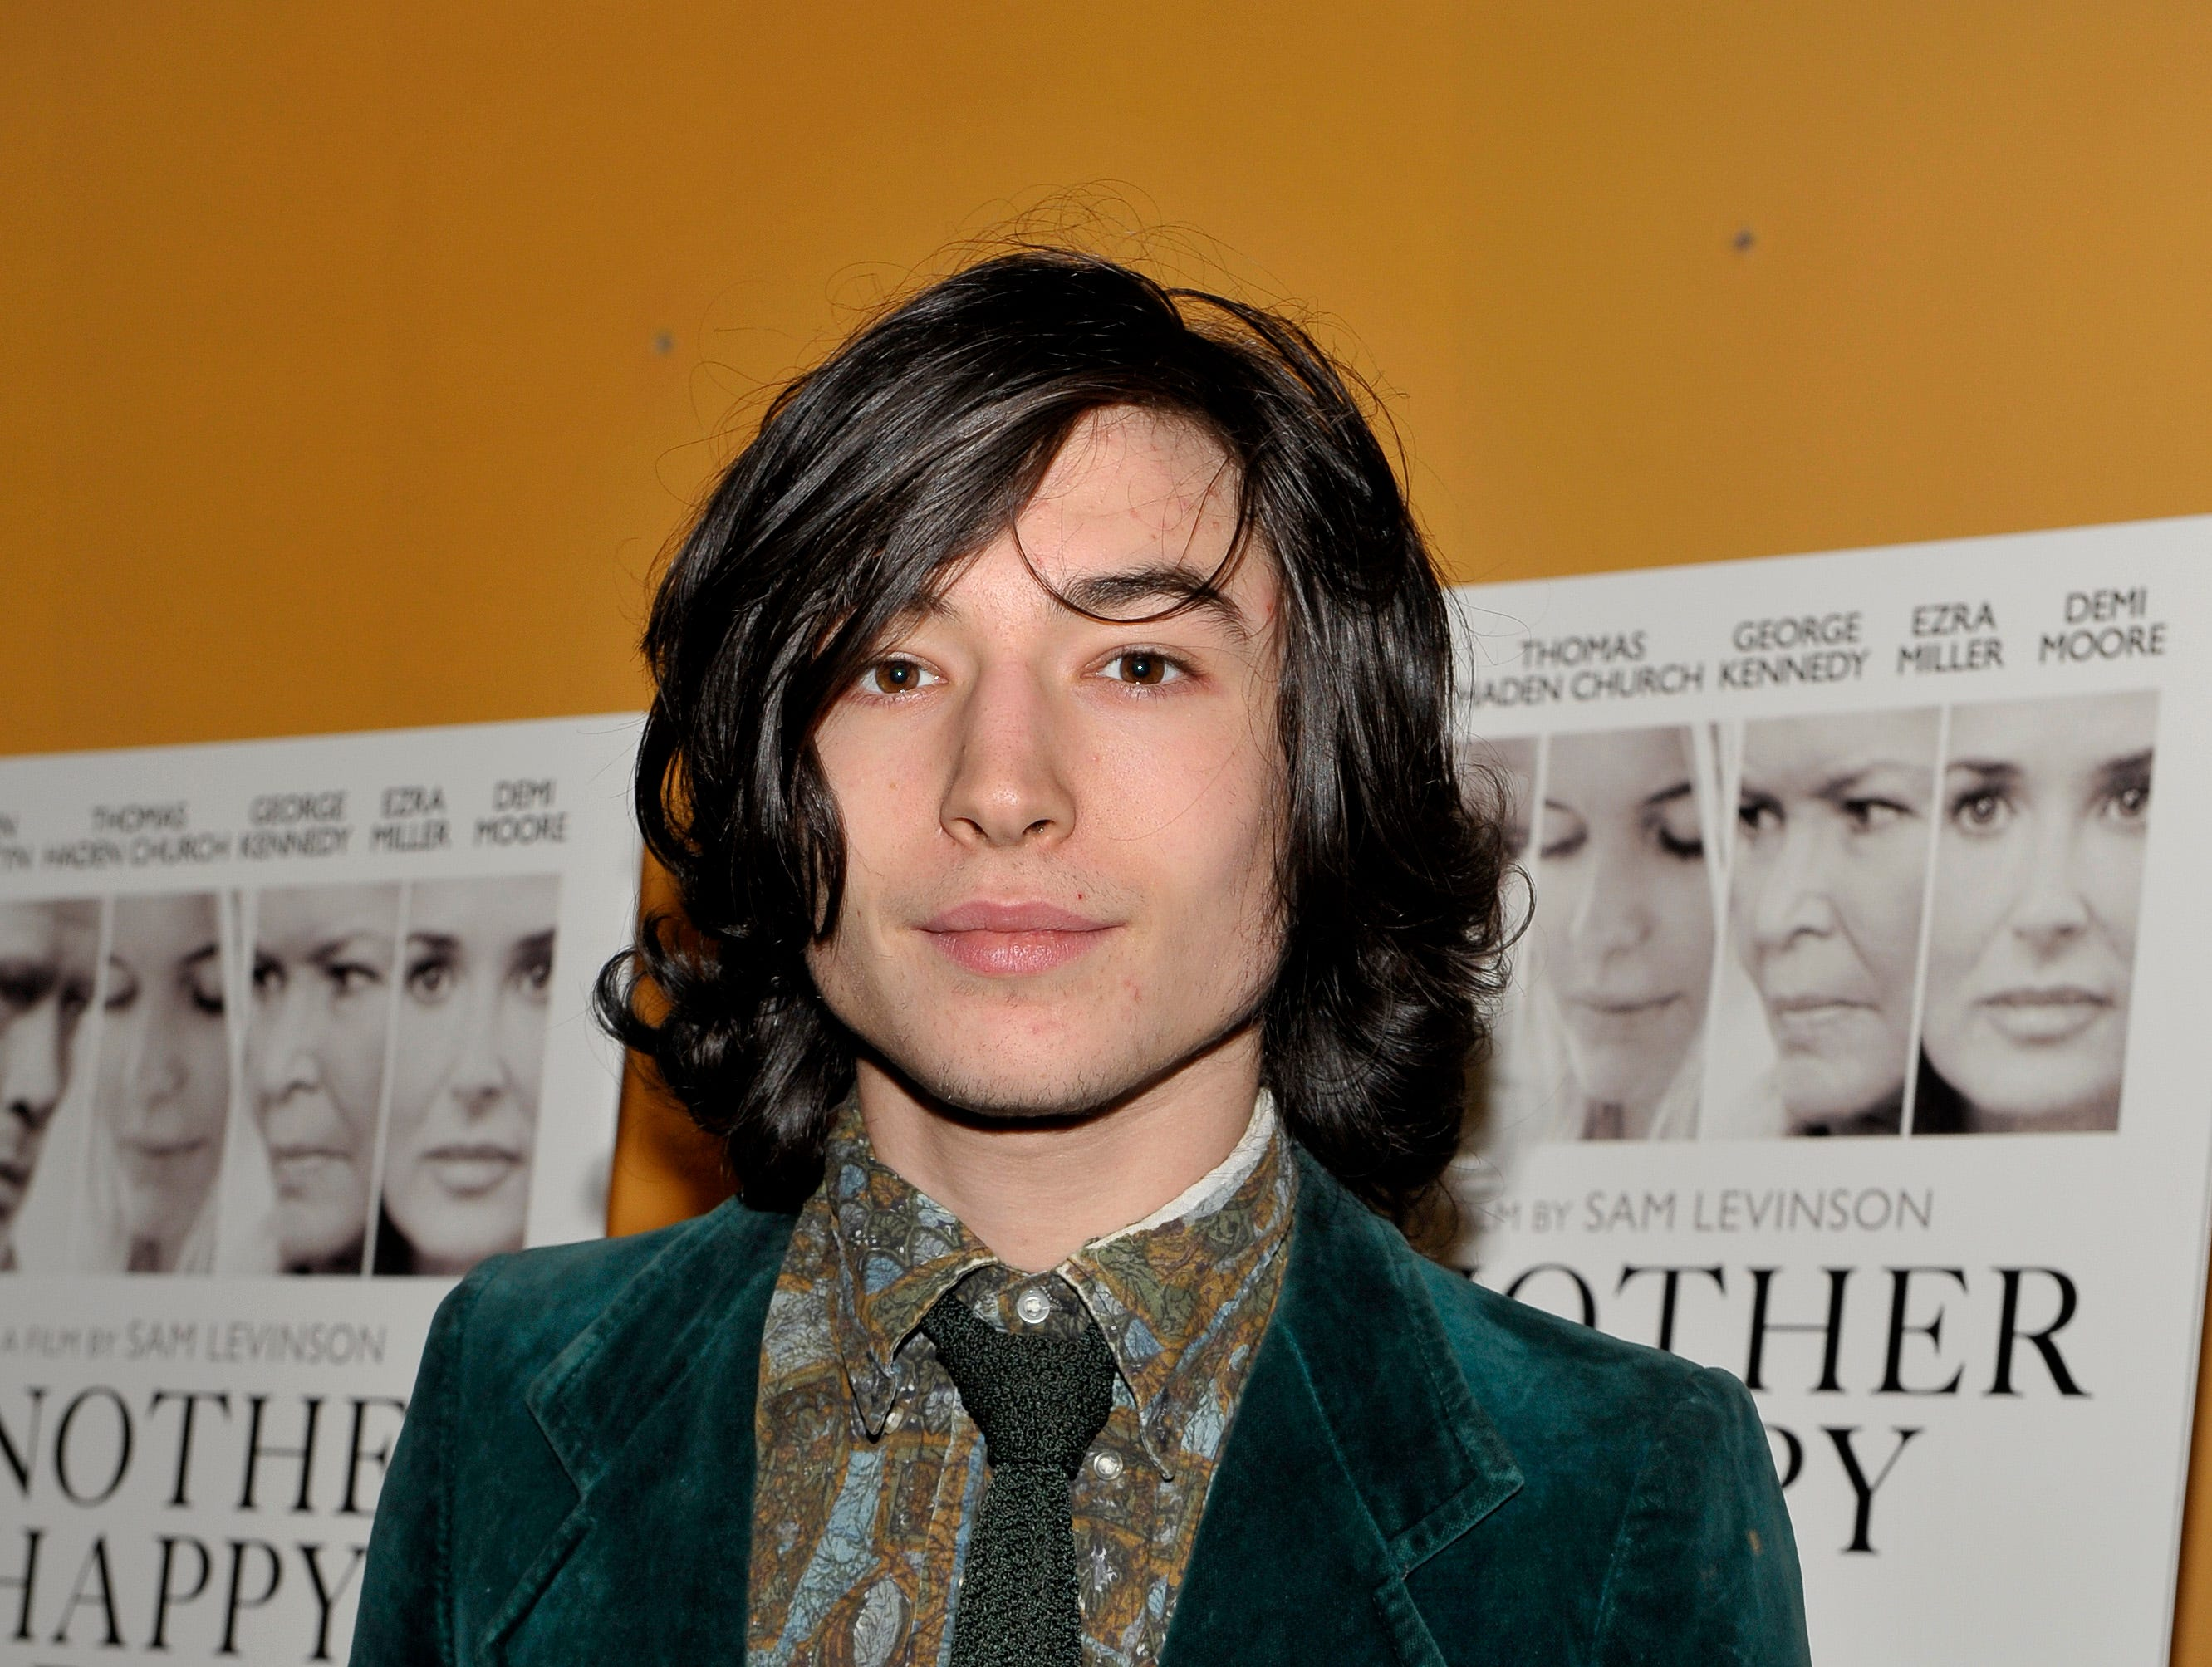 """ORG XMIT: 132722727 NEW YORK, NY - NOVEMBER 14: Ezra Miller attends a screening of """"Another Happy Day"""" at Sunshine Landmark on November 14, 2011 in New York City. (Photo by Michael N. Todaro/Getty Images) ORIG FILE ID: 132863220"""